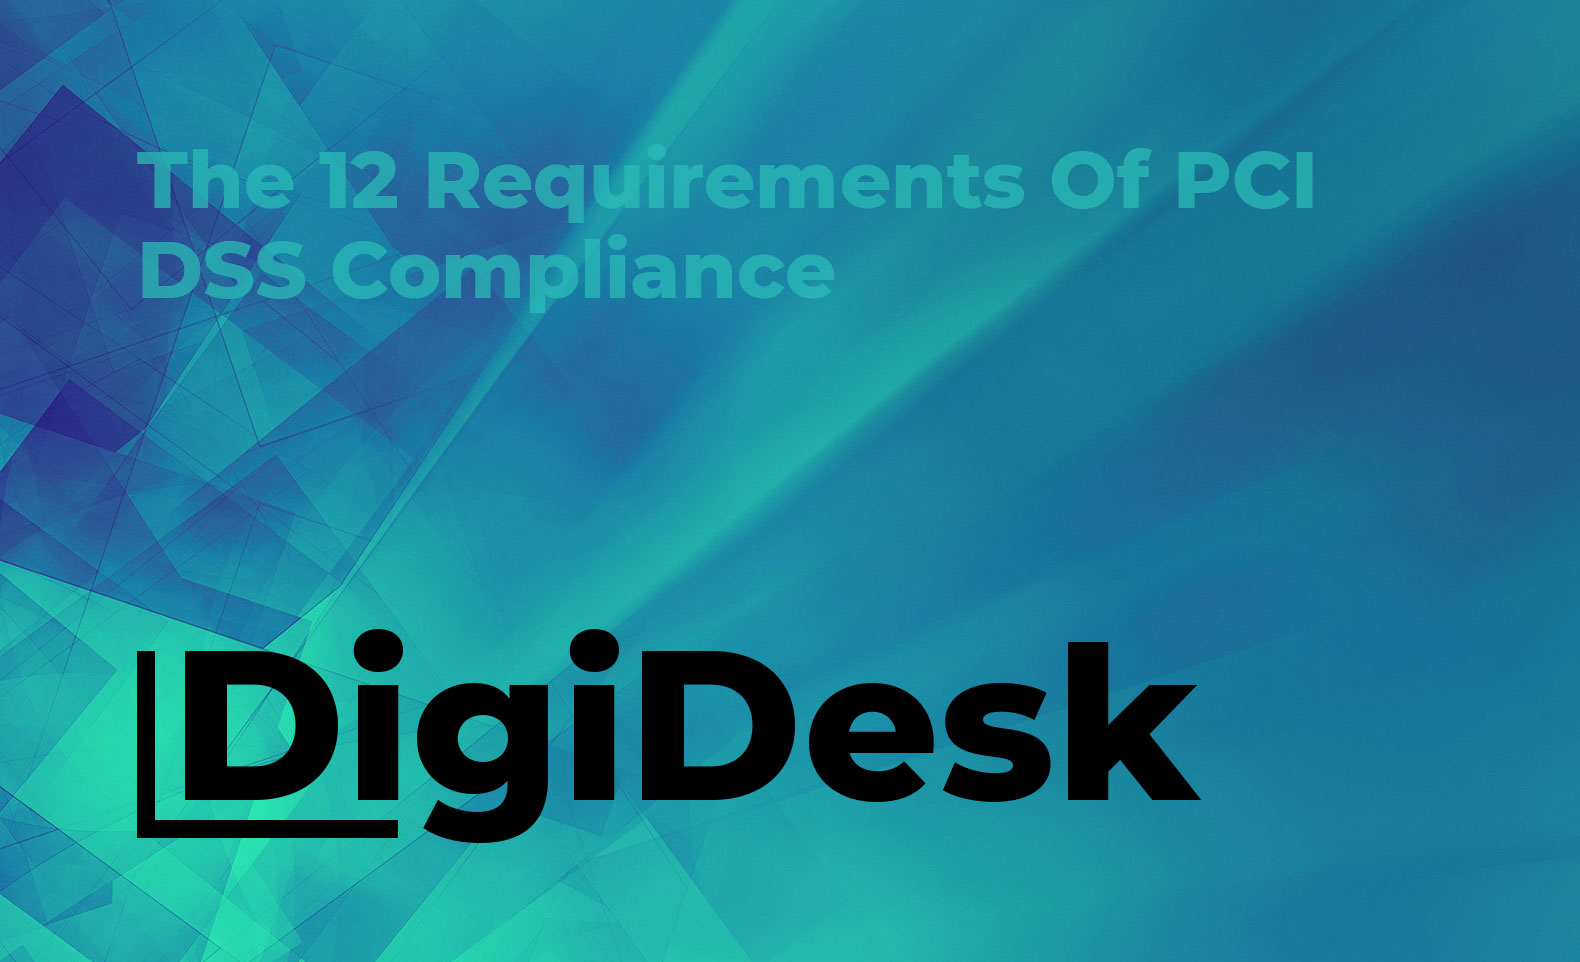 The 12 Requirements Of PCI DSS Compliance